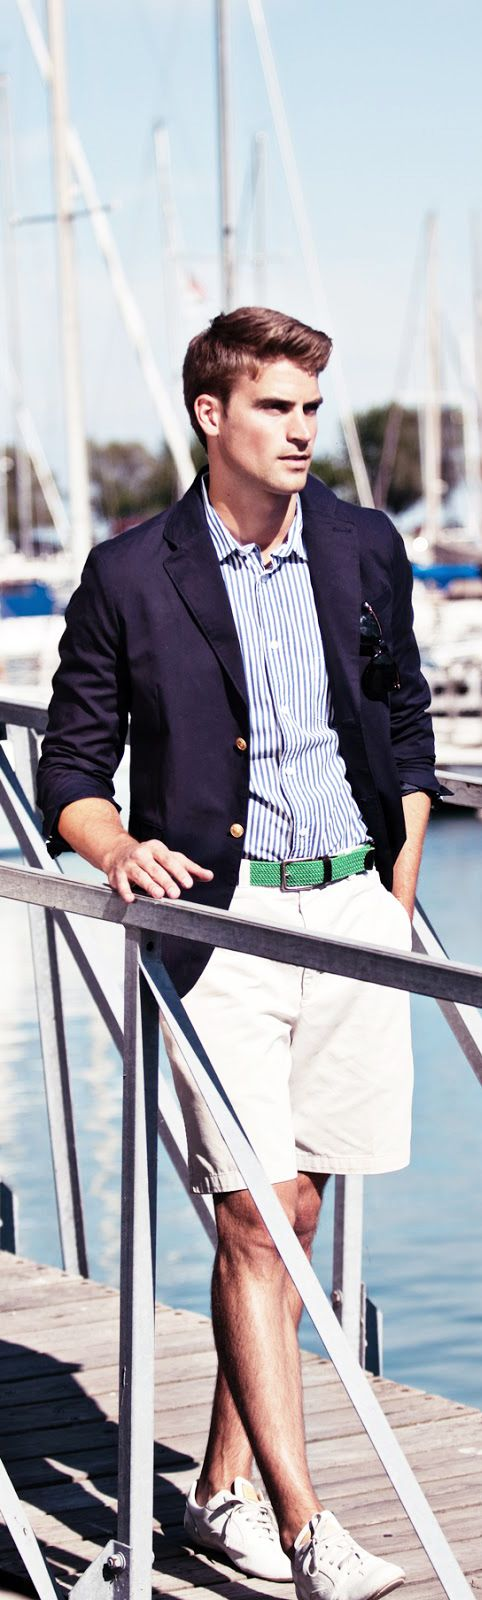 Classically Styled for Yachting #menstyle #yachting #yachtcouture